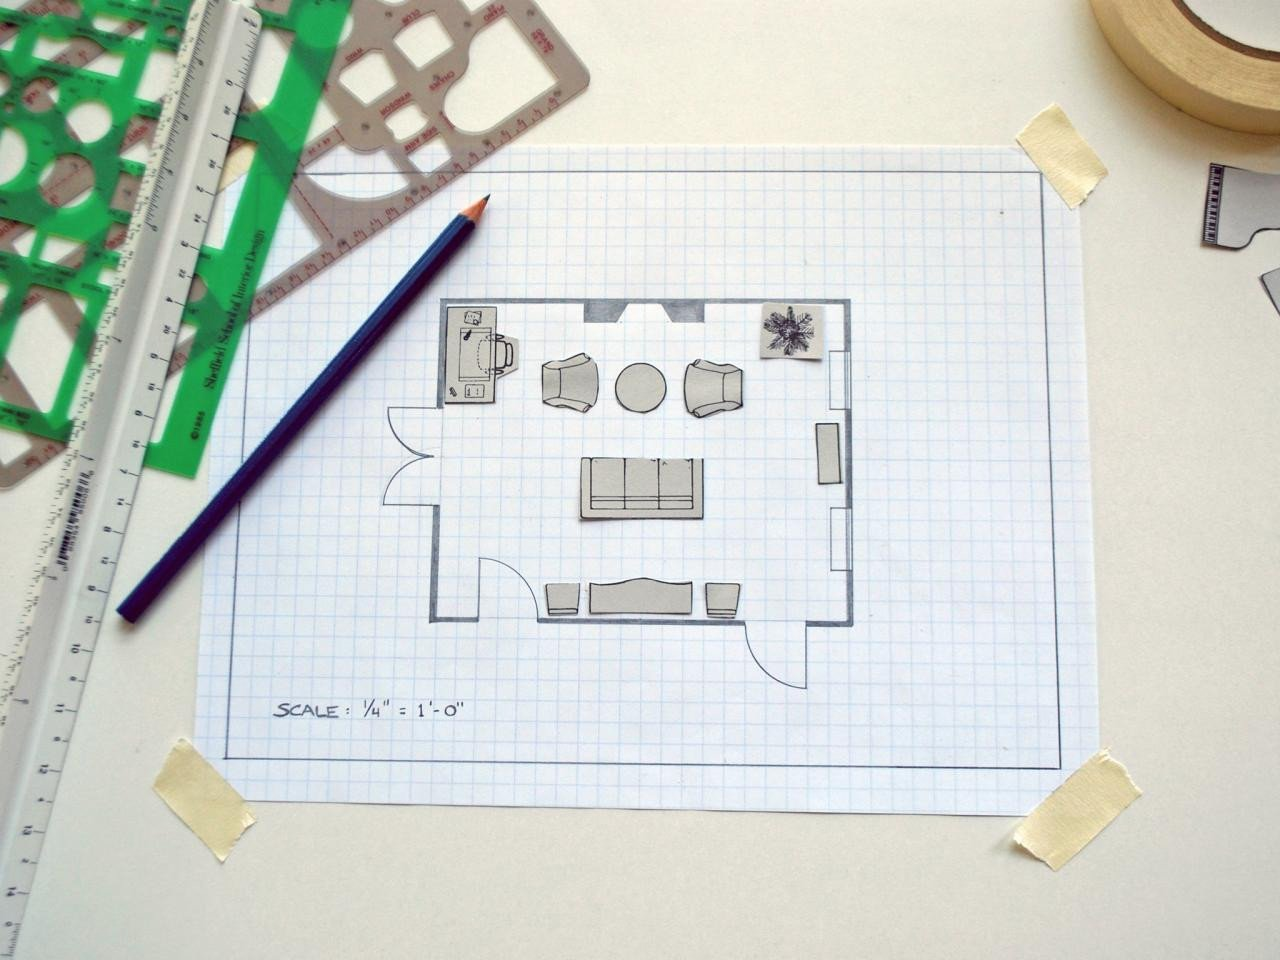 12x12 Bedroom Furniture Layout New How to Create A Floor Plan and Furniture Layout